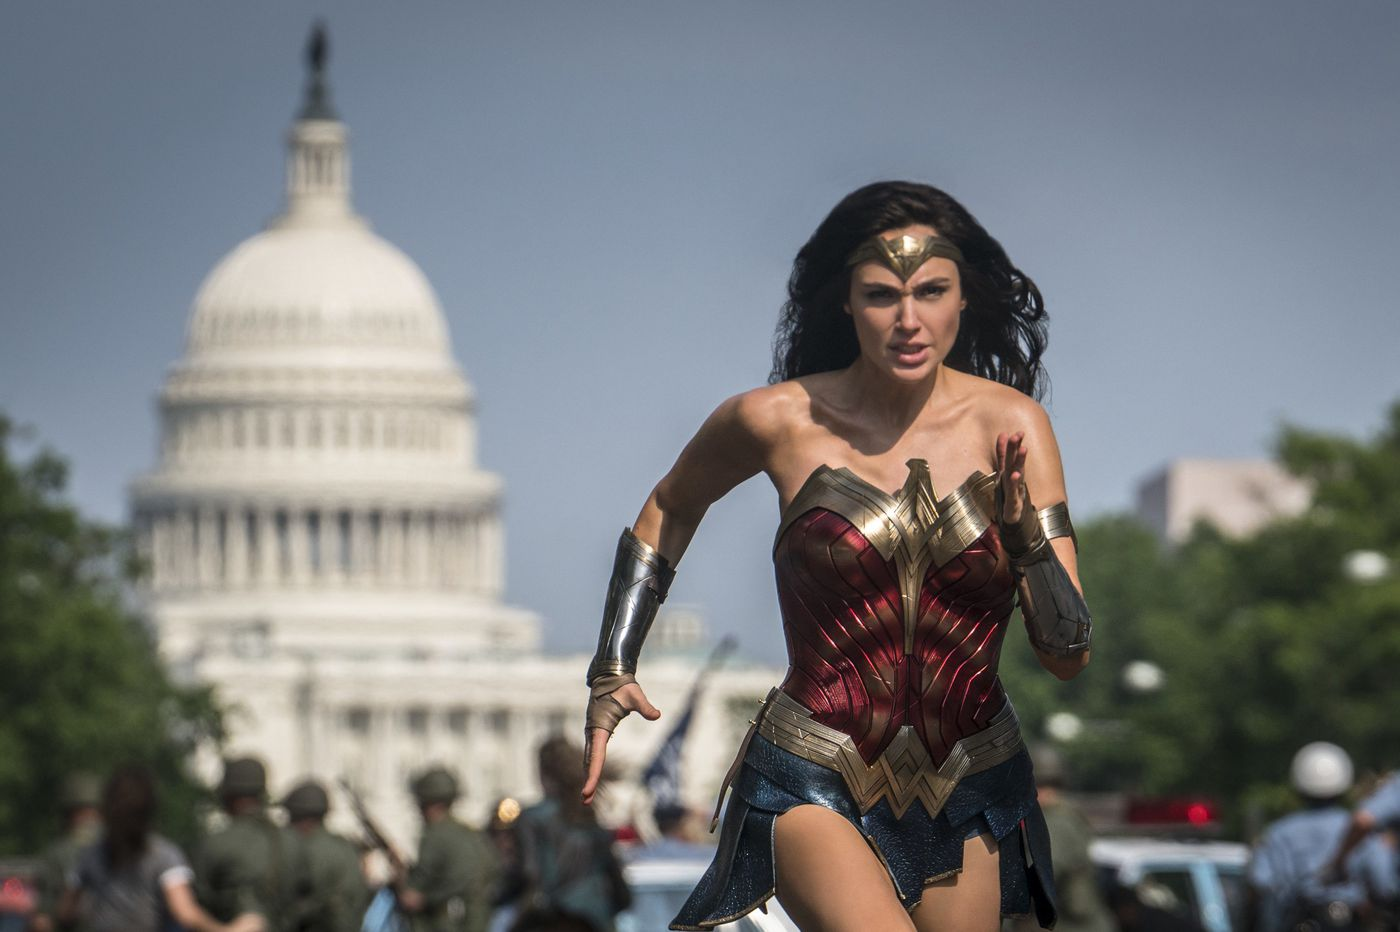 With big villains and bigger hair, 'Wonder Woman 1984' is a gloriously overstuffed sequel